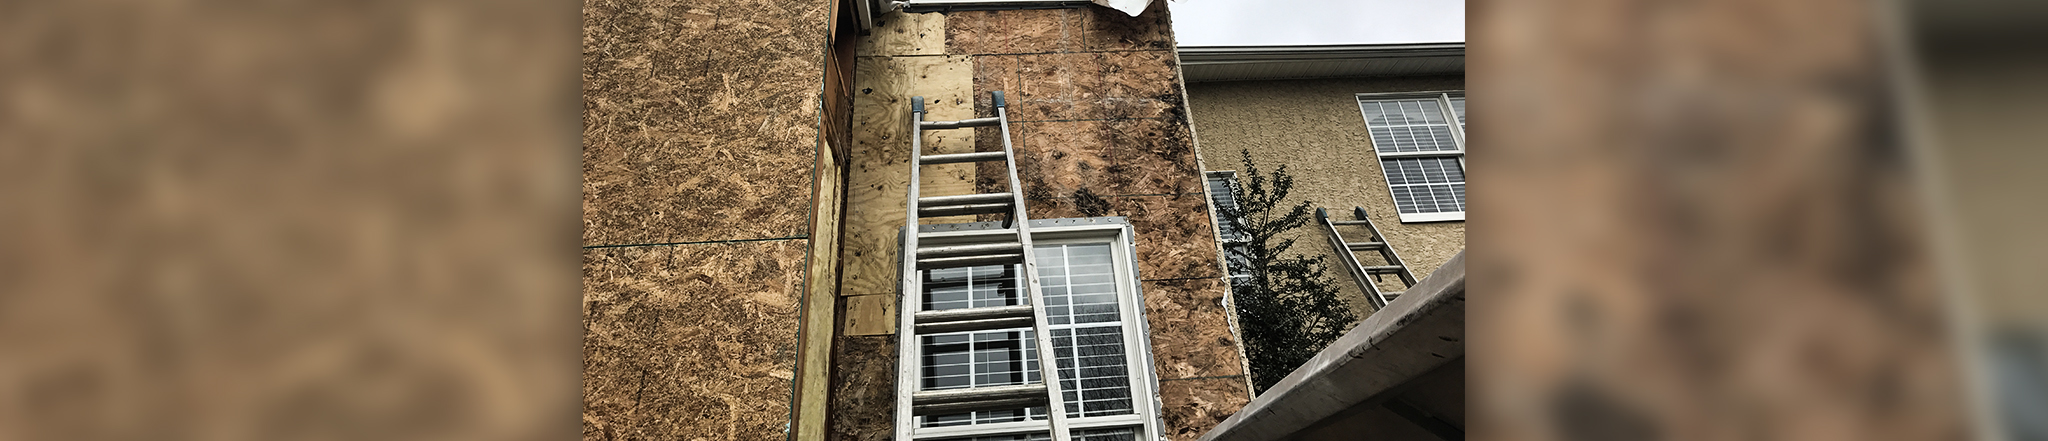 Stucco Problems Plague Bucks County Pa Homeowners